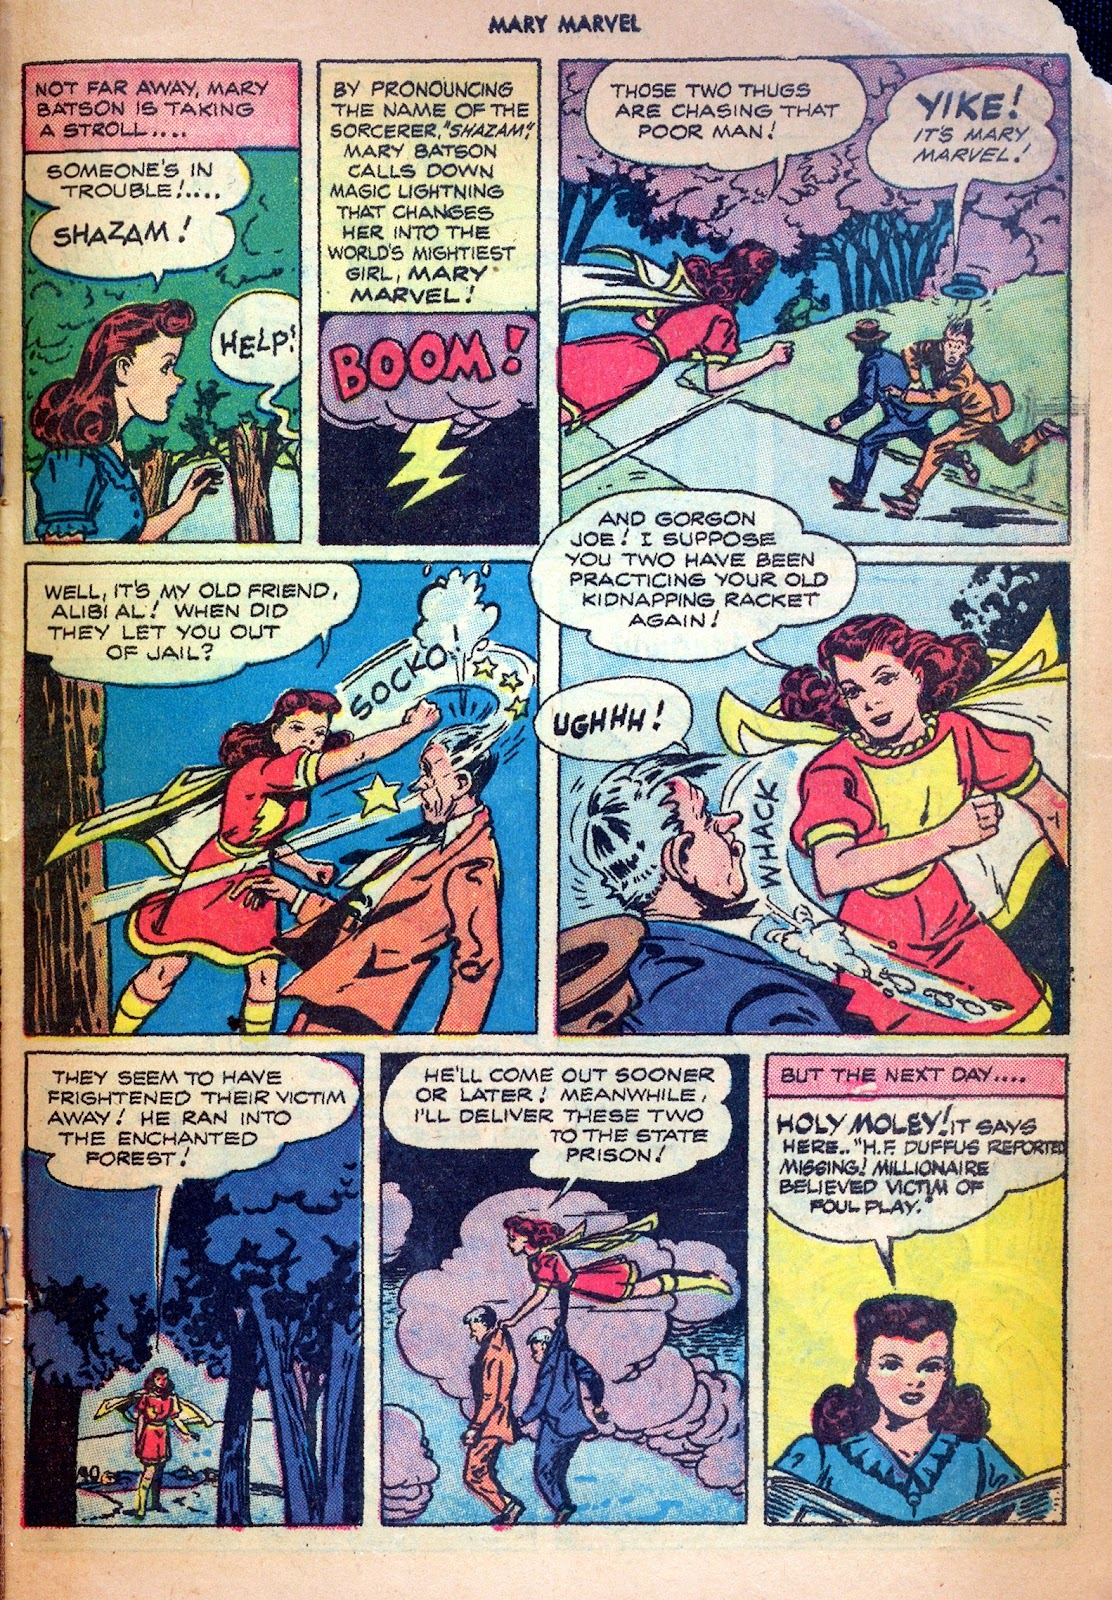 Read online Mary Marvel comic -  Issue #19 - 29